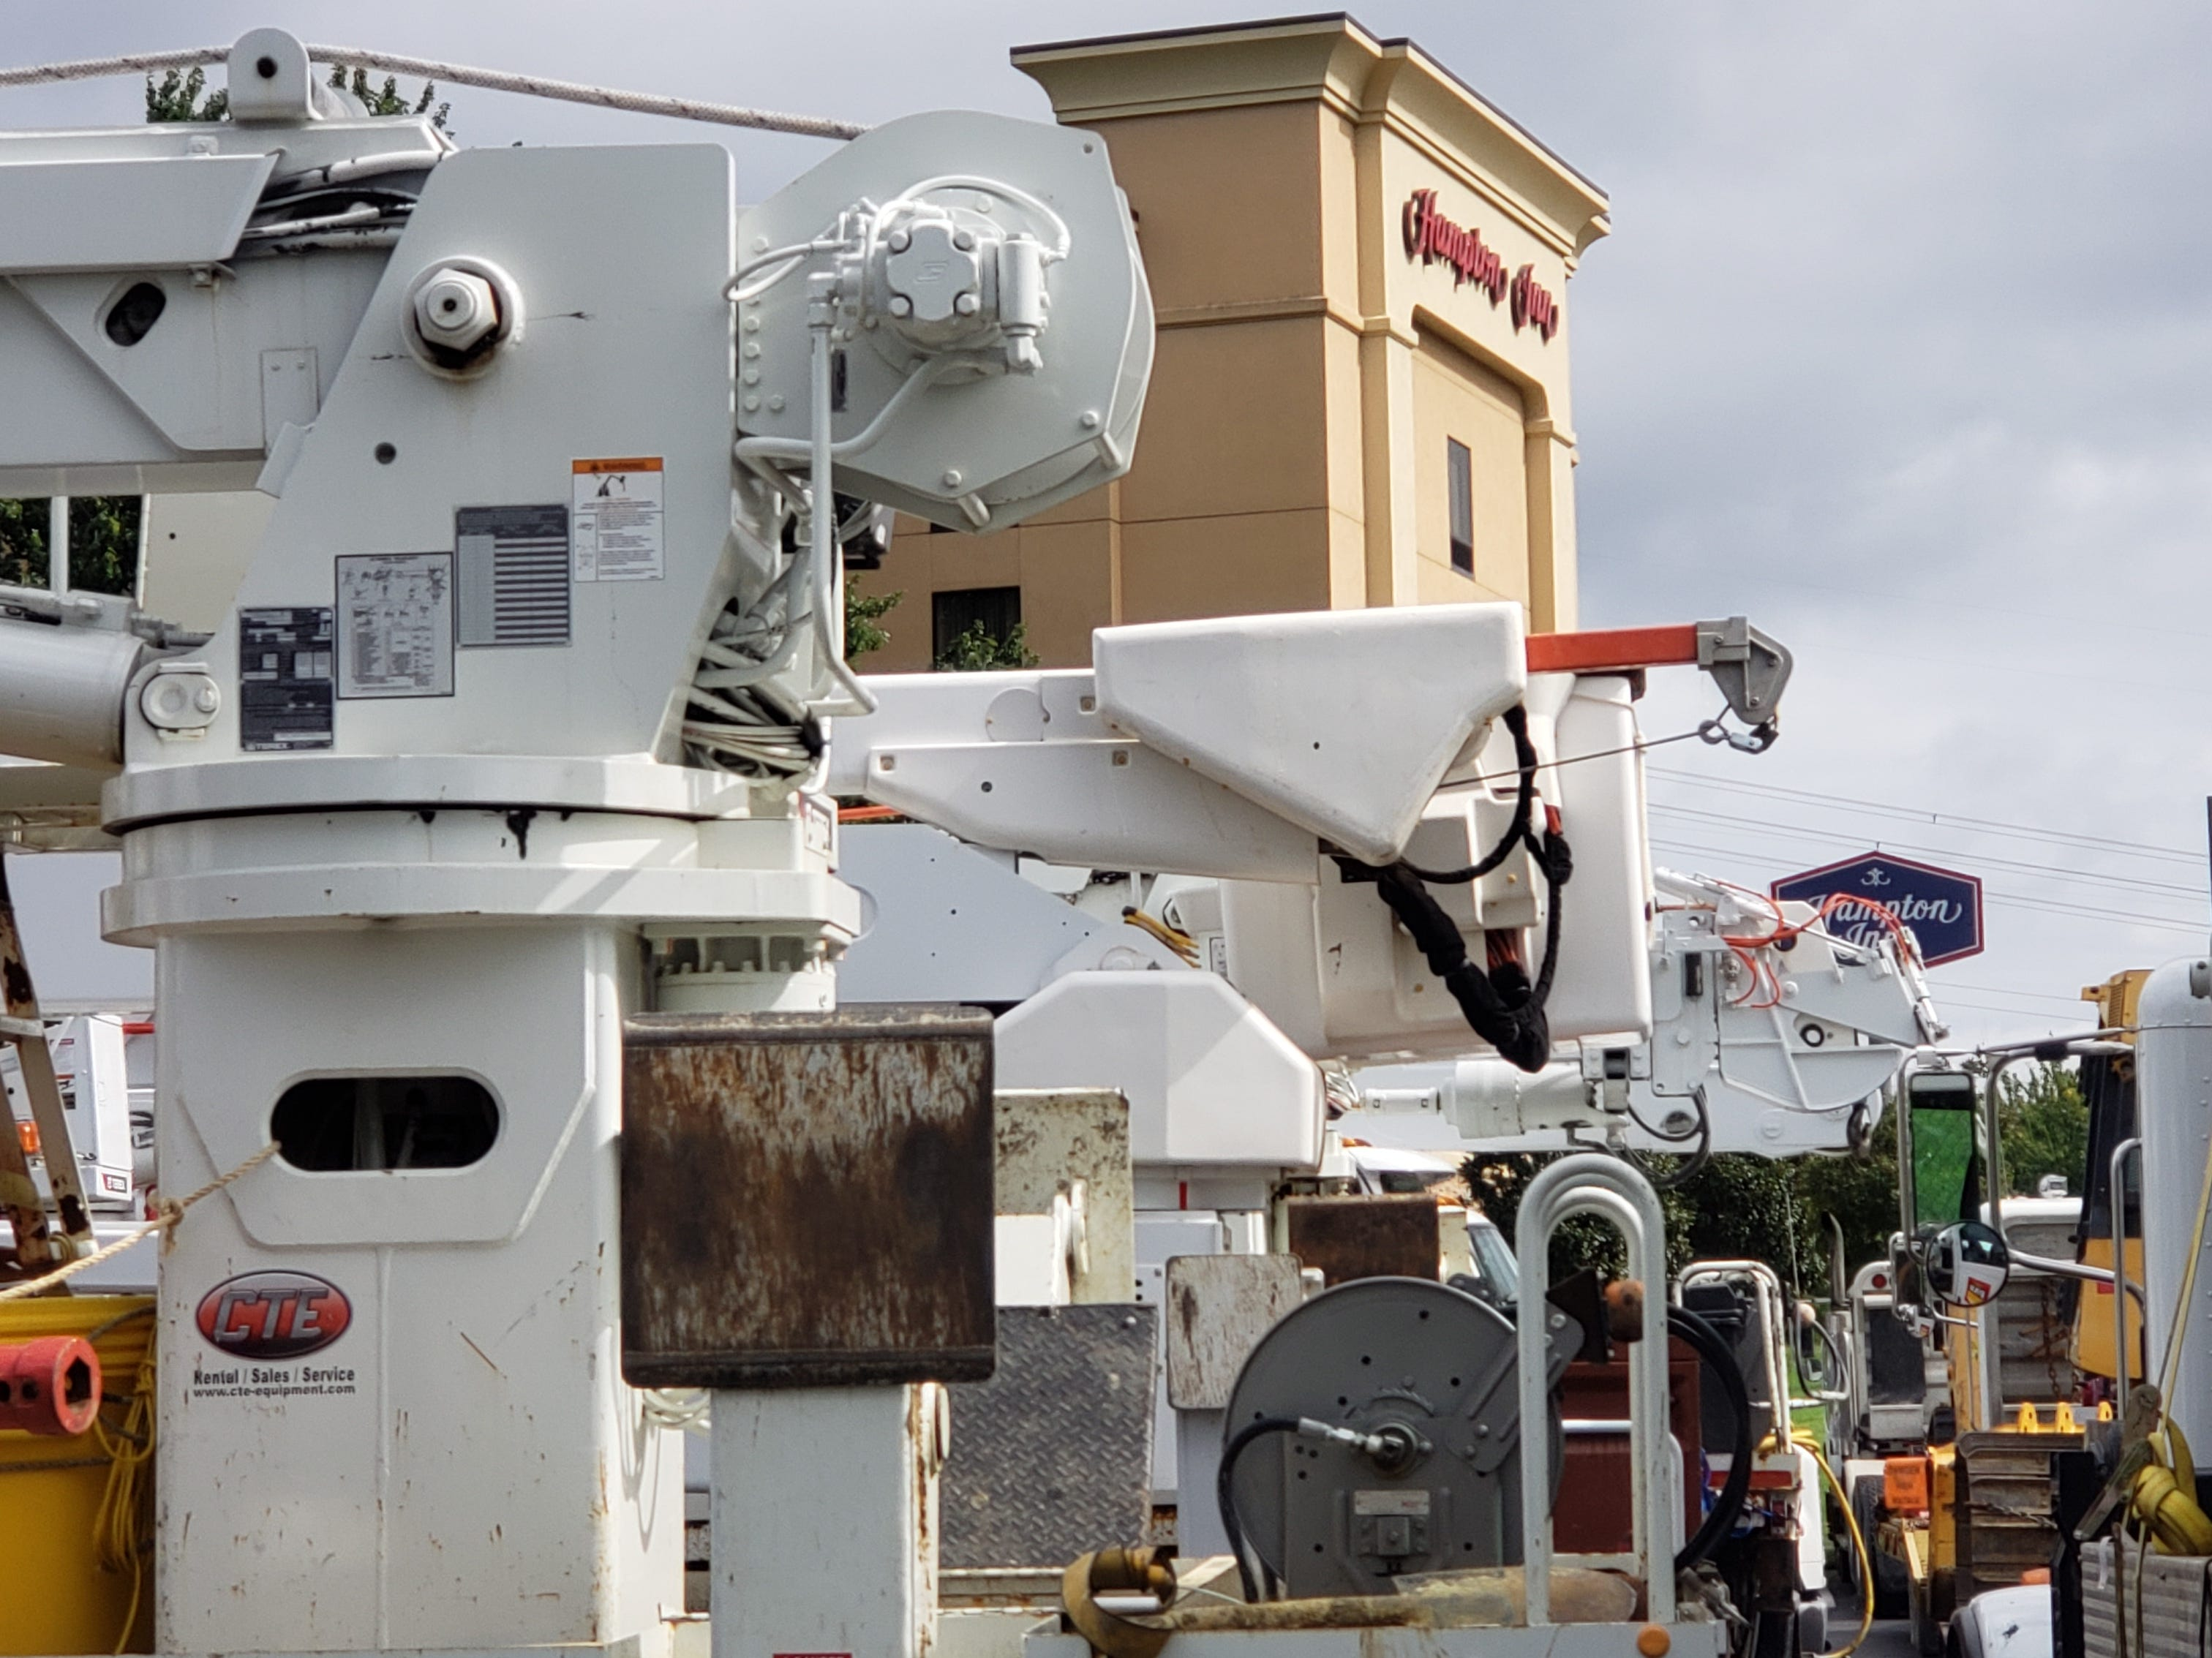 Electric and road crew trucks wait Thursday near a Knoxville Hampton Inn on Executive Drive to travel to Florida and the Carolinas for Hurricane Michael aid.